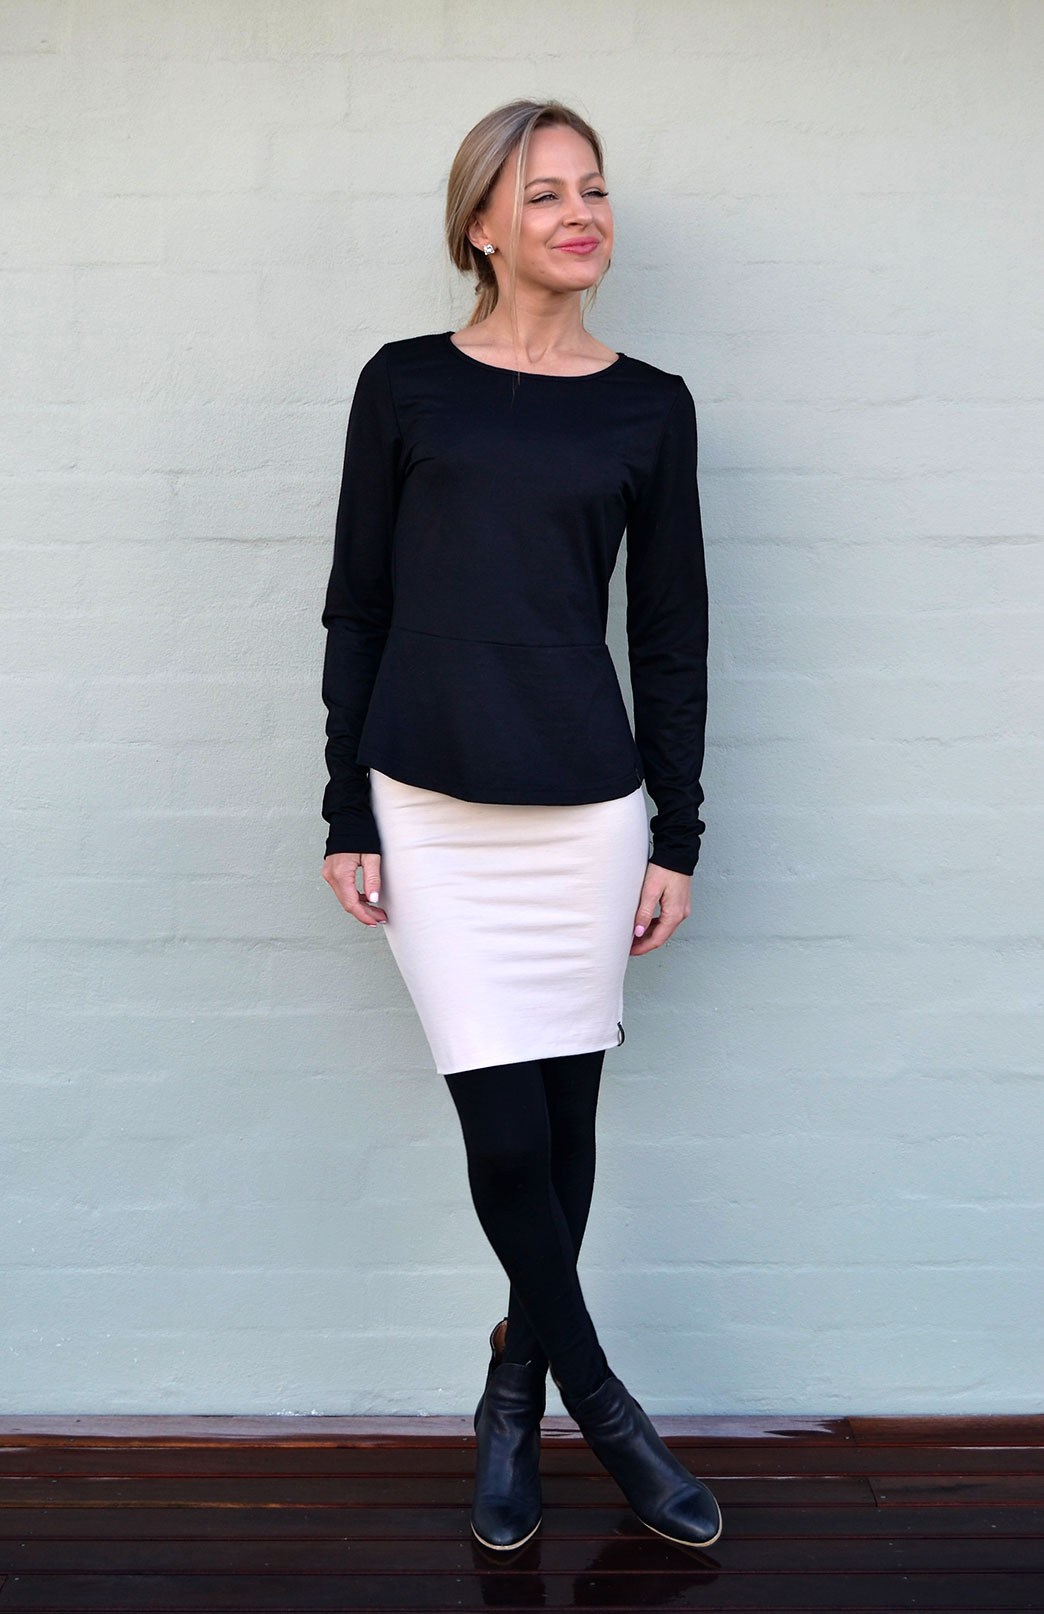 Peplum Top - Long Sleeved - Women's Black Long Sleeve Wool Winter Top - Smitten Merino Tasmania Australia